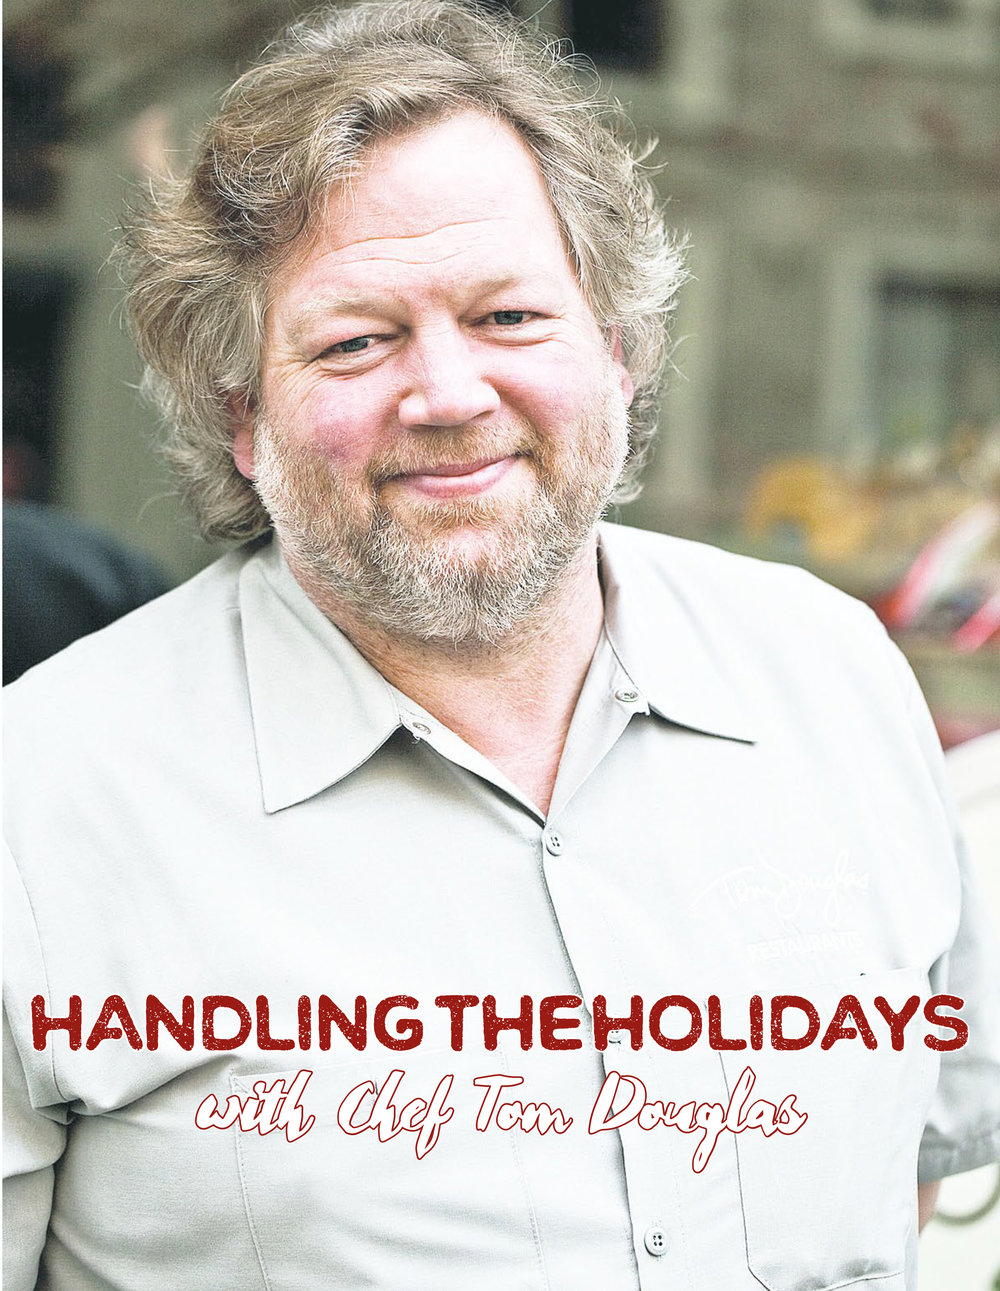 AM DEC HANDLING THE HOLIDAYS WITH CHEF TOM DOUGLAS-1.jpg